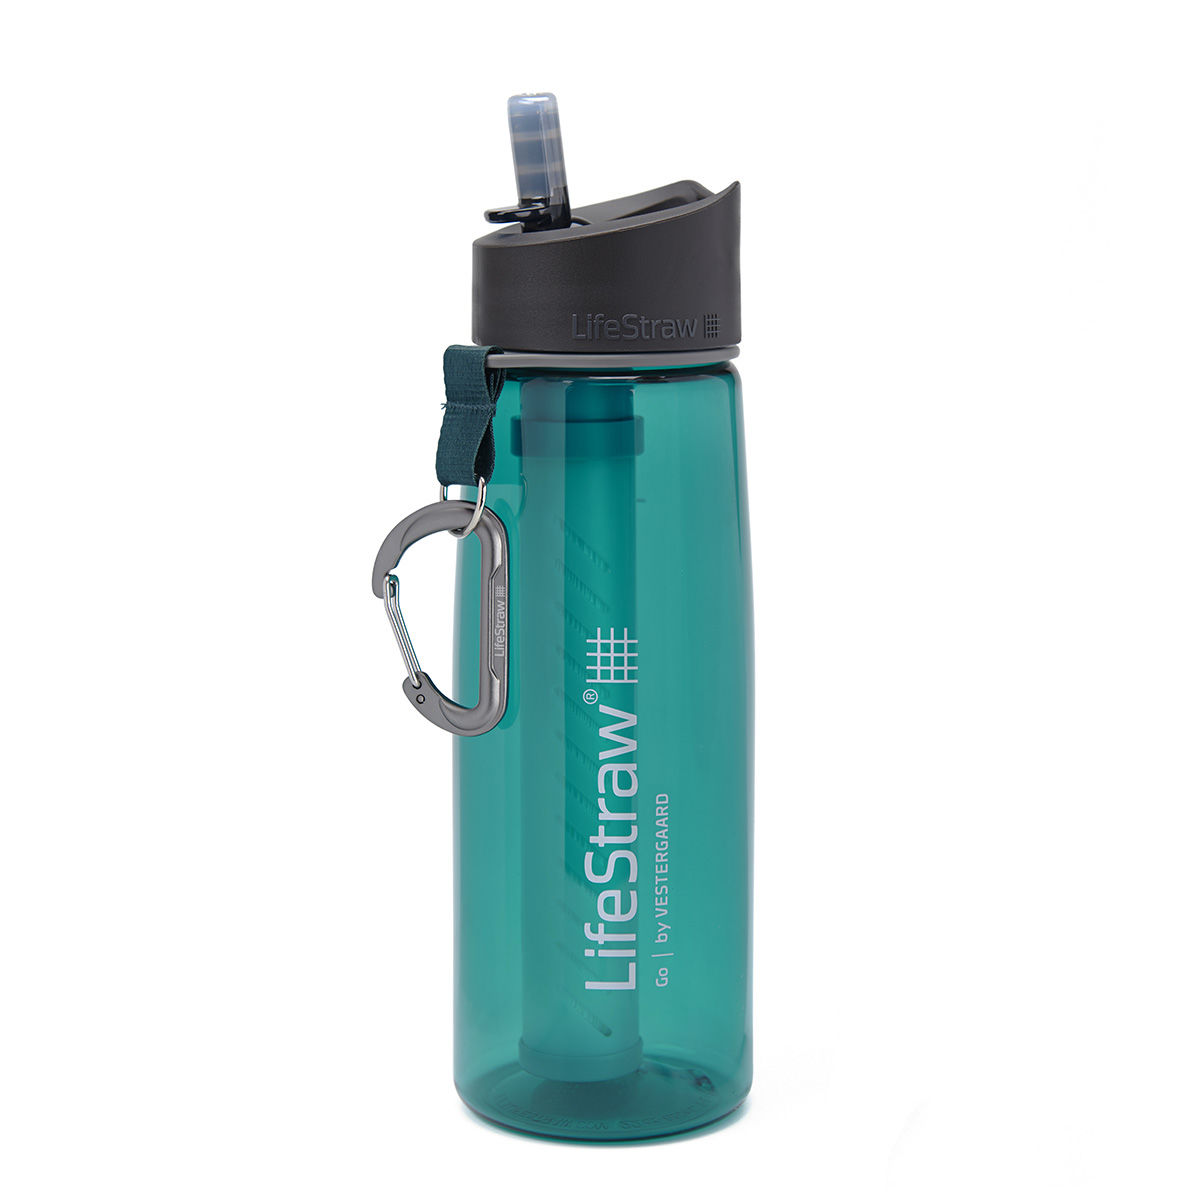 LifeStraw Go 2 bleu